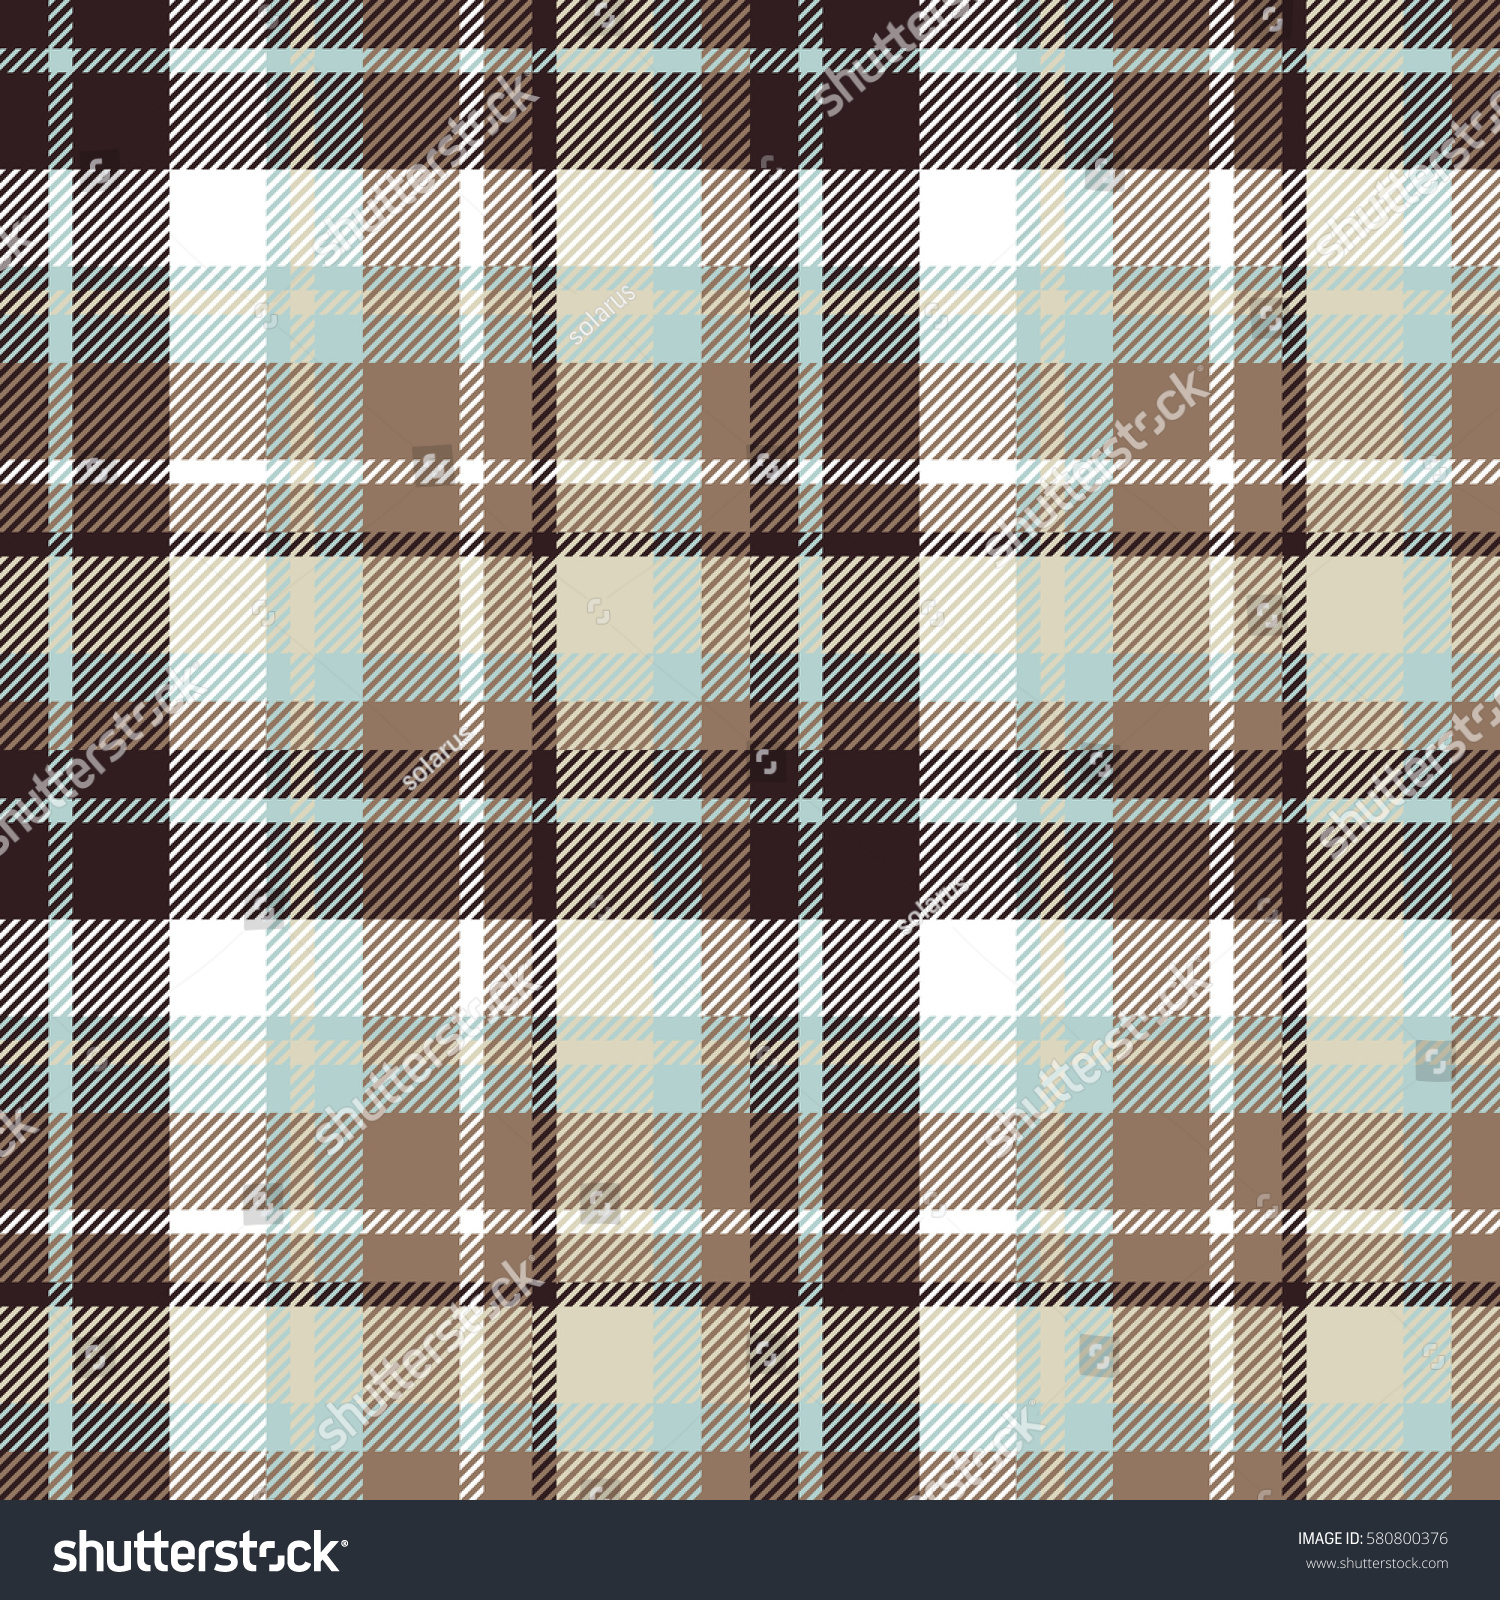 Brown Seamless Fabric Textures Brown Blue Seamless Check Fabric Texture Stock Illustration